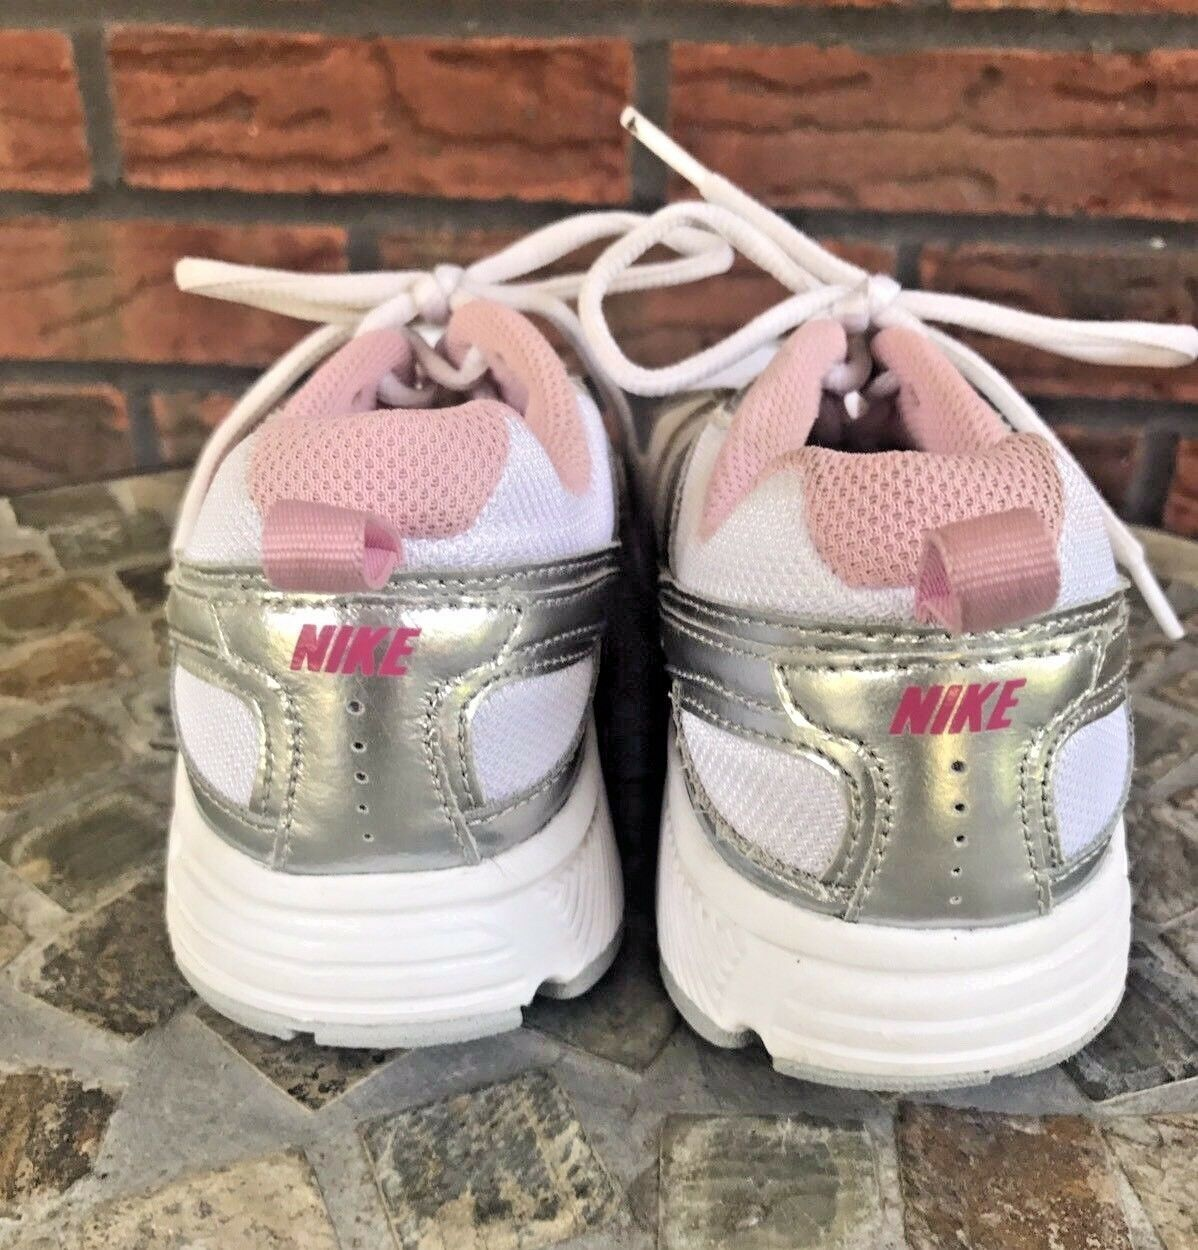 Nike Dart Shoes Size 4.5Y Running Workout Sneakers Pink White Silver Trainers